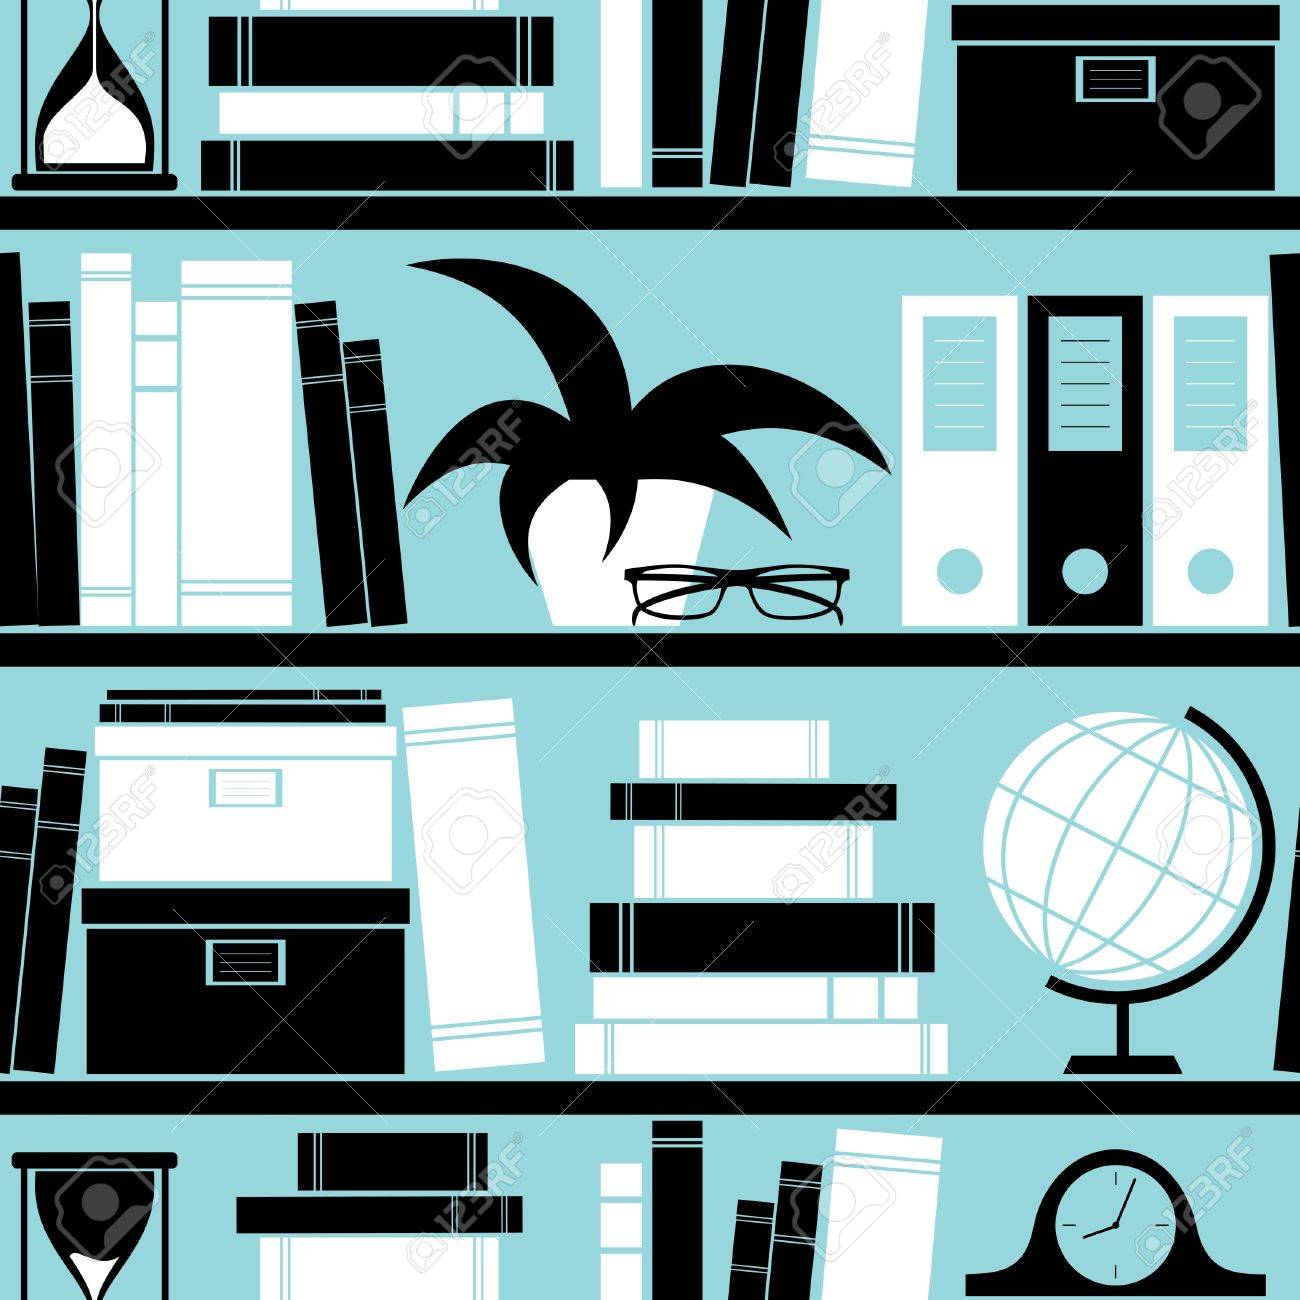 Seamless pattern with different objects placed on a bookshelf, Stock Vector - 13361196